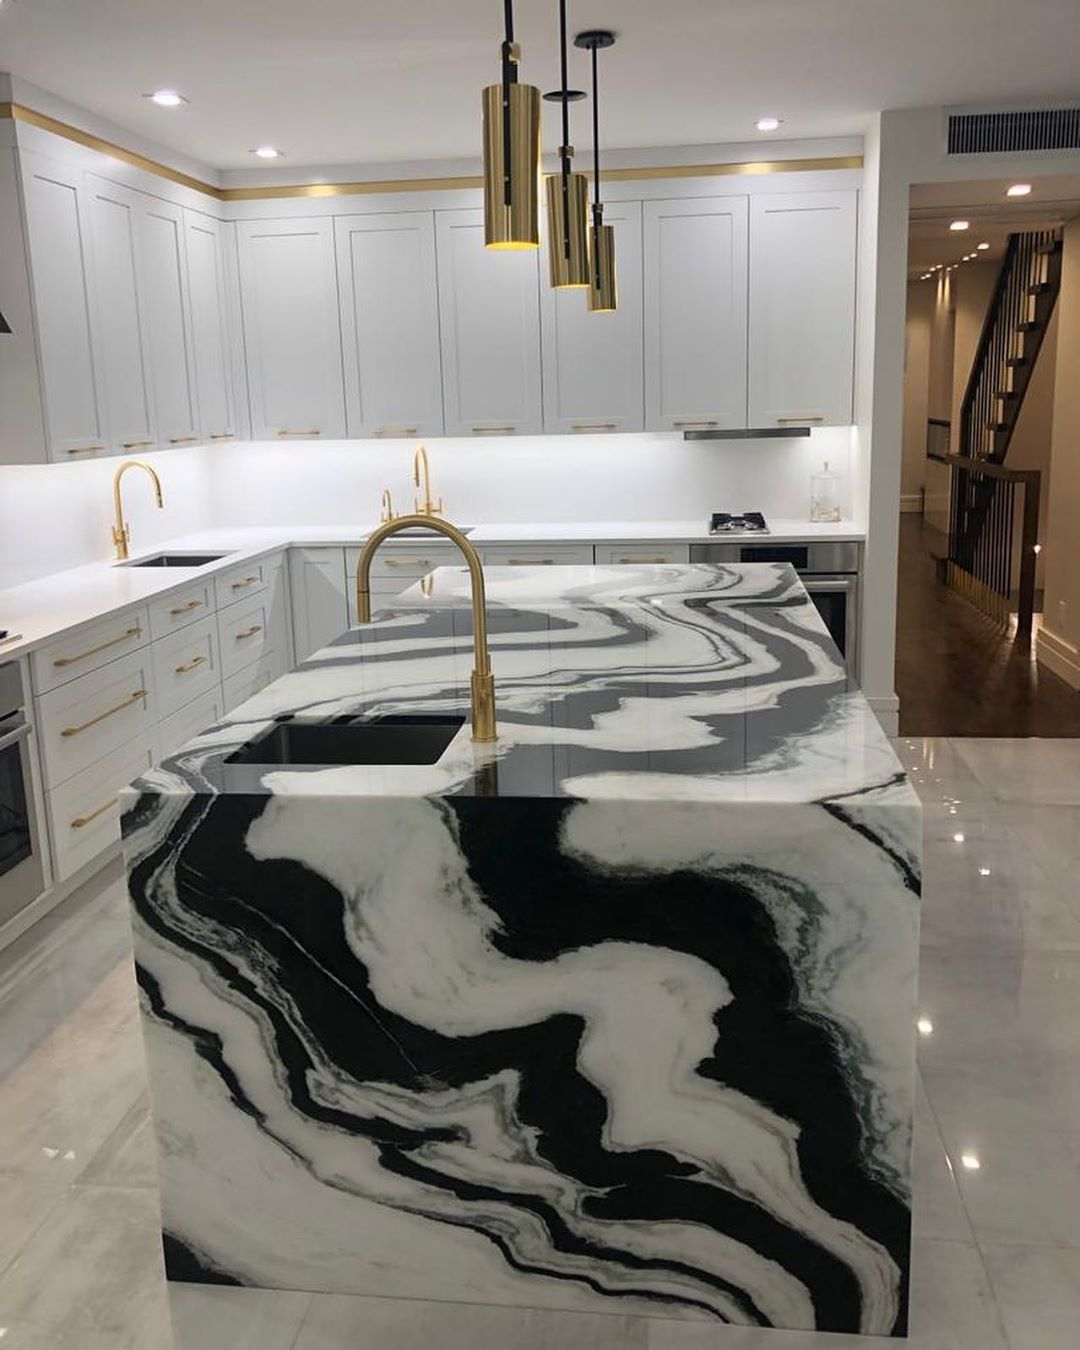 Royal Marble Installers On Instagram All Sides Of This Panda Marble Countor Tops Islan In 2020 Dream House Decor Waterfall Island Kitchen Marble Kitchen Island